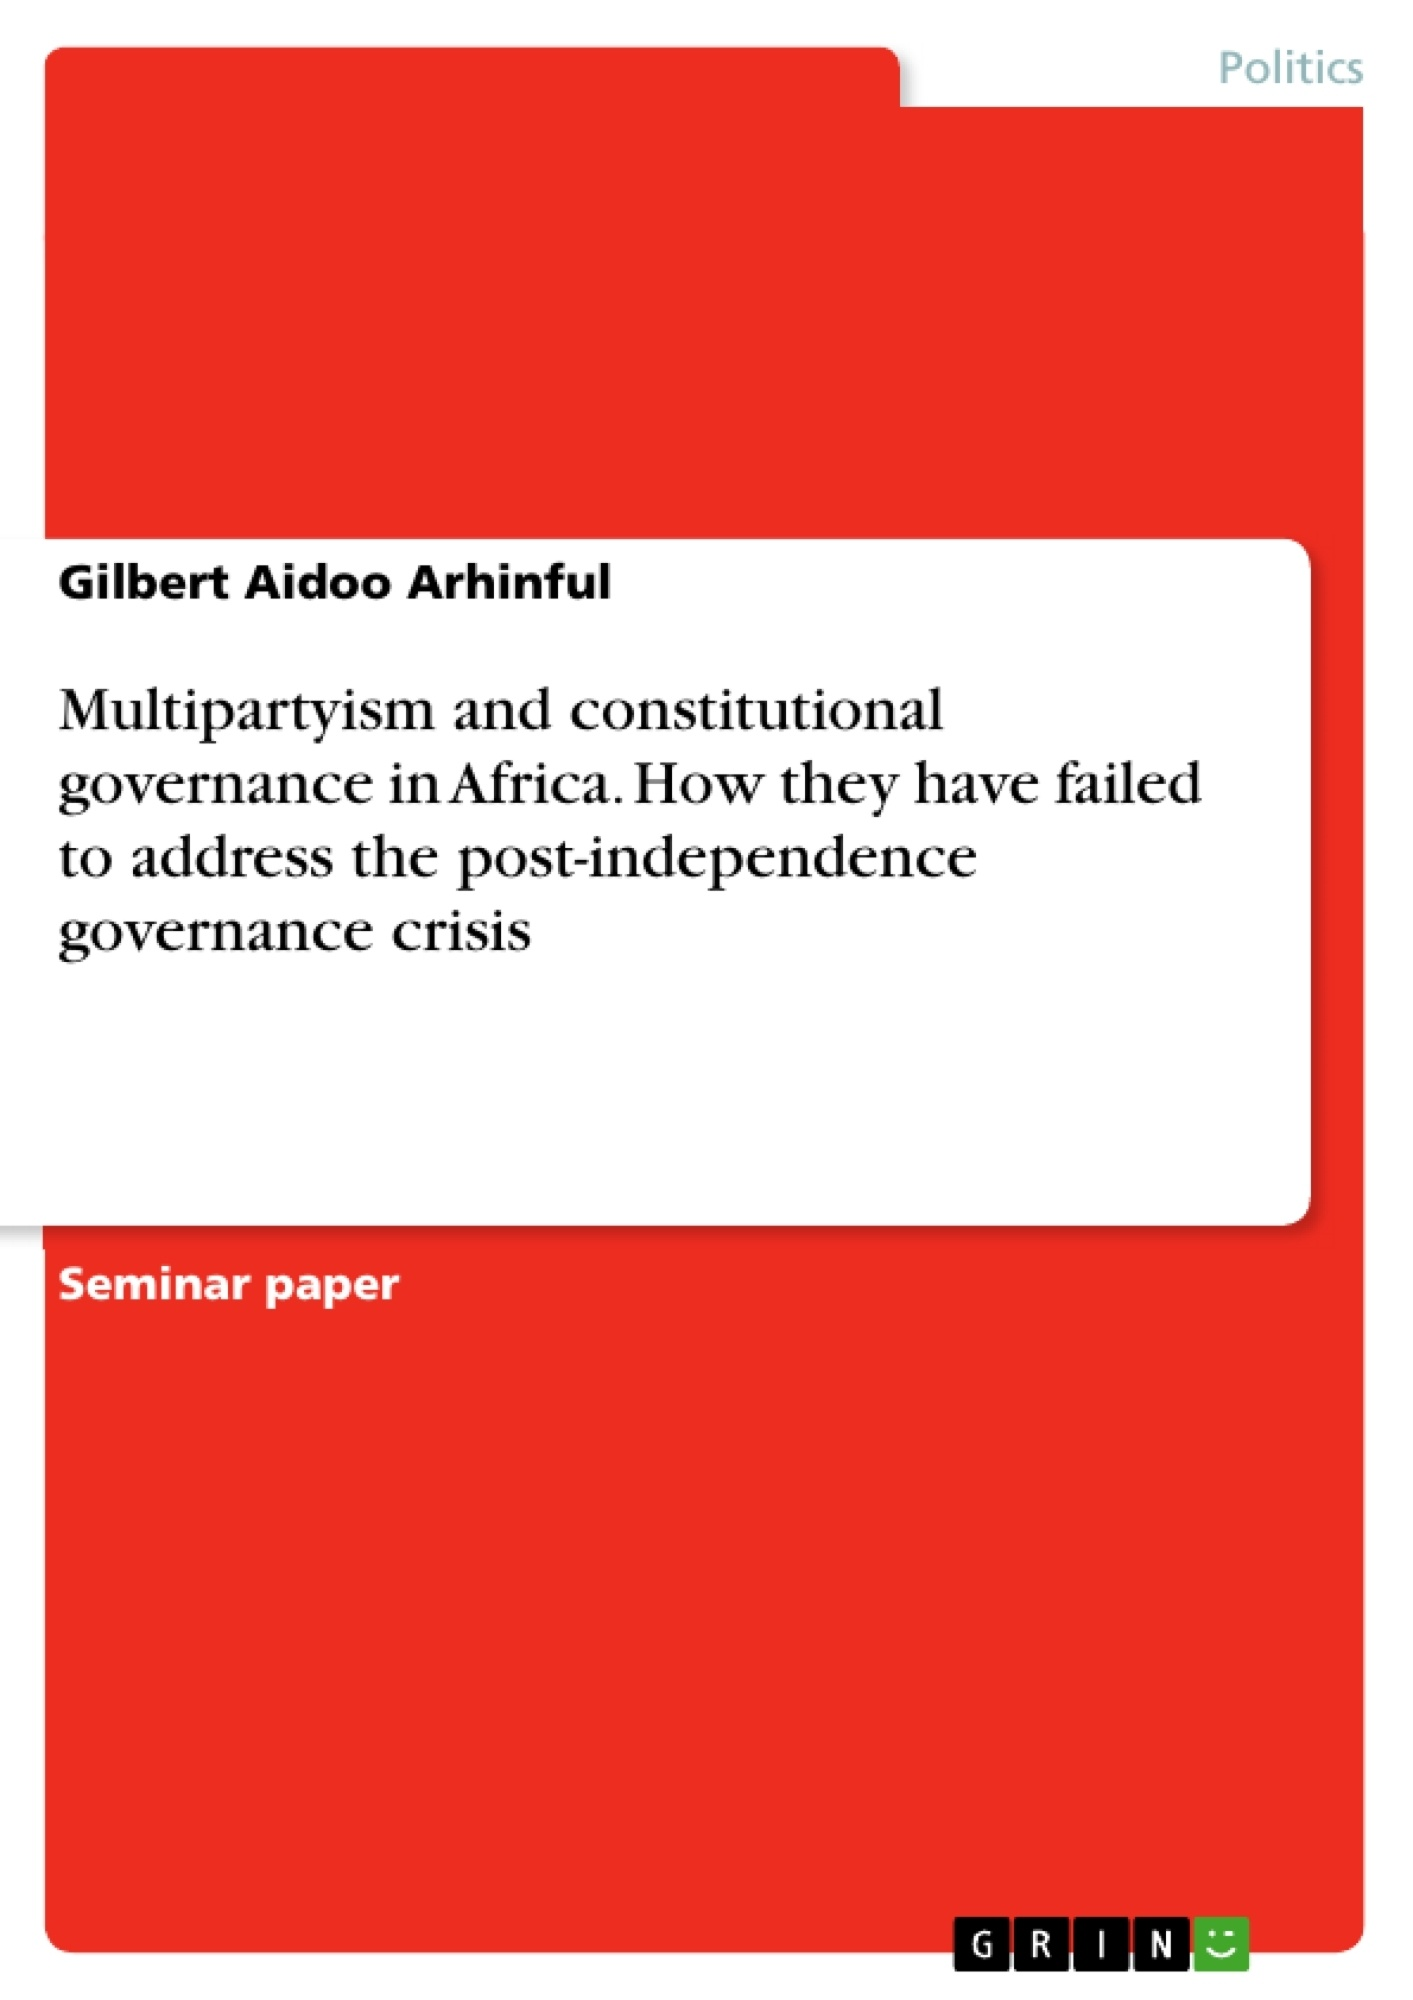 Title: Multipartyism and constitutional governance in Africa. How they have failed to address the post-independence governance crisis